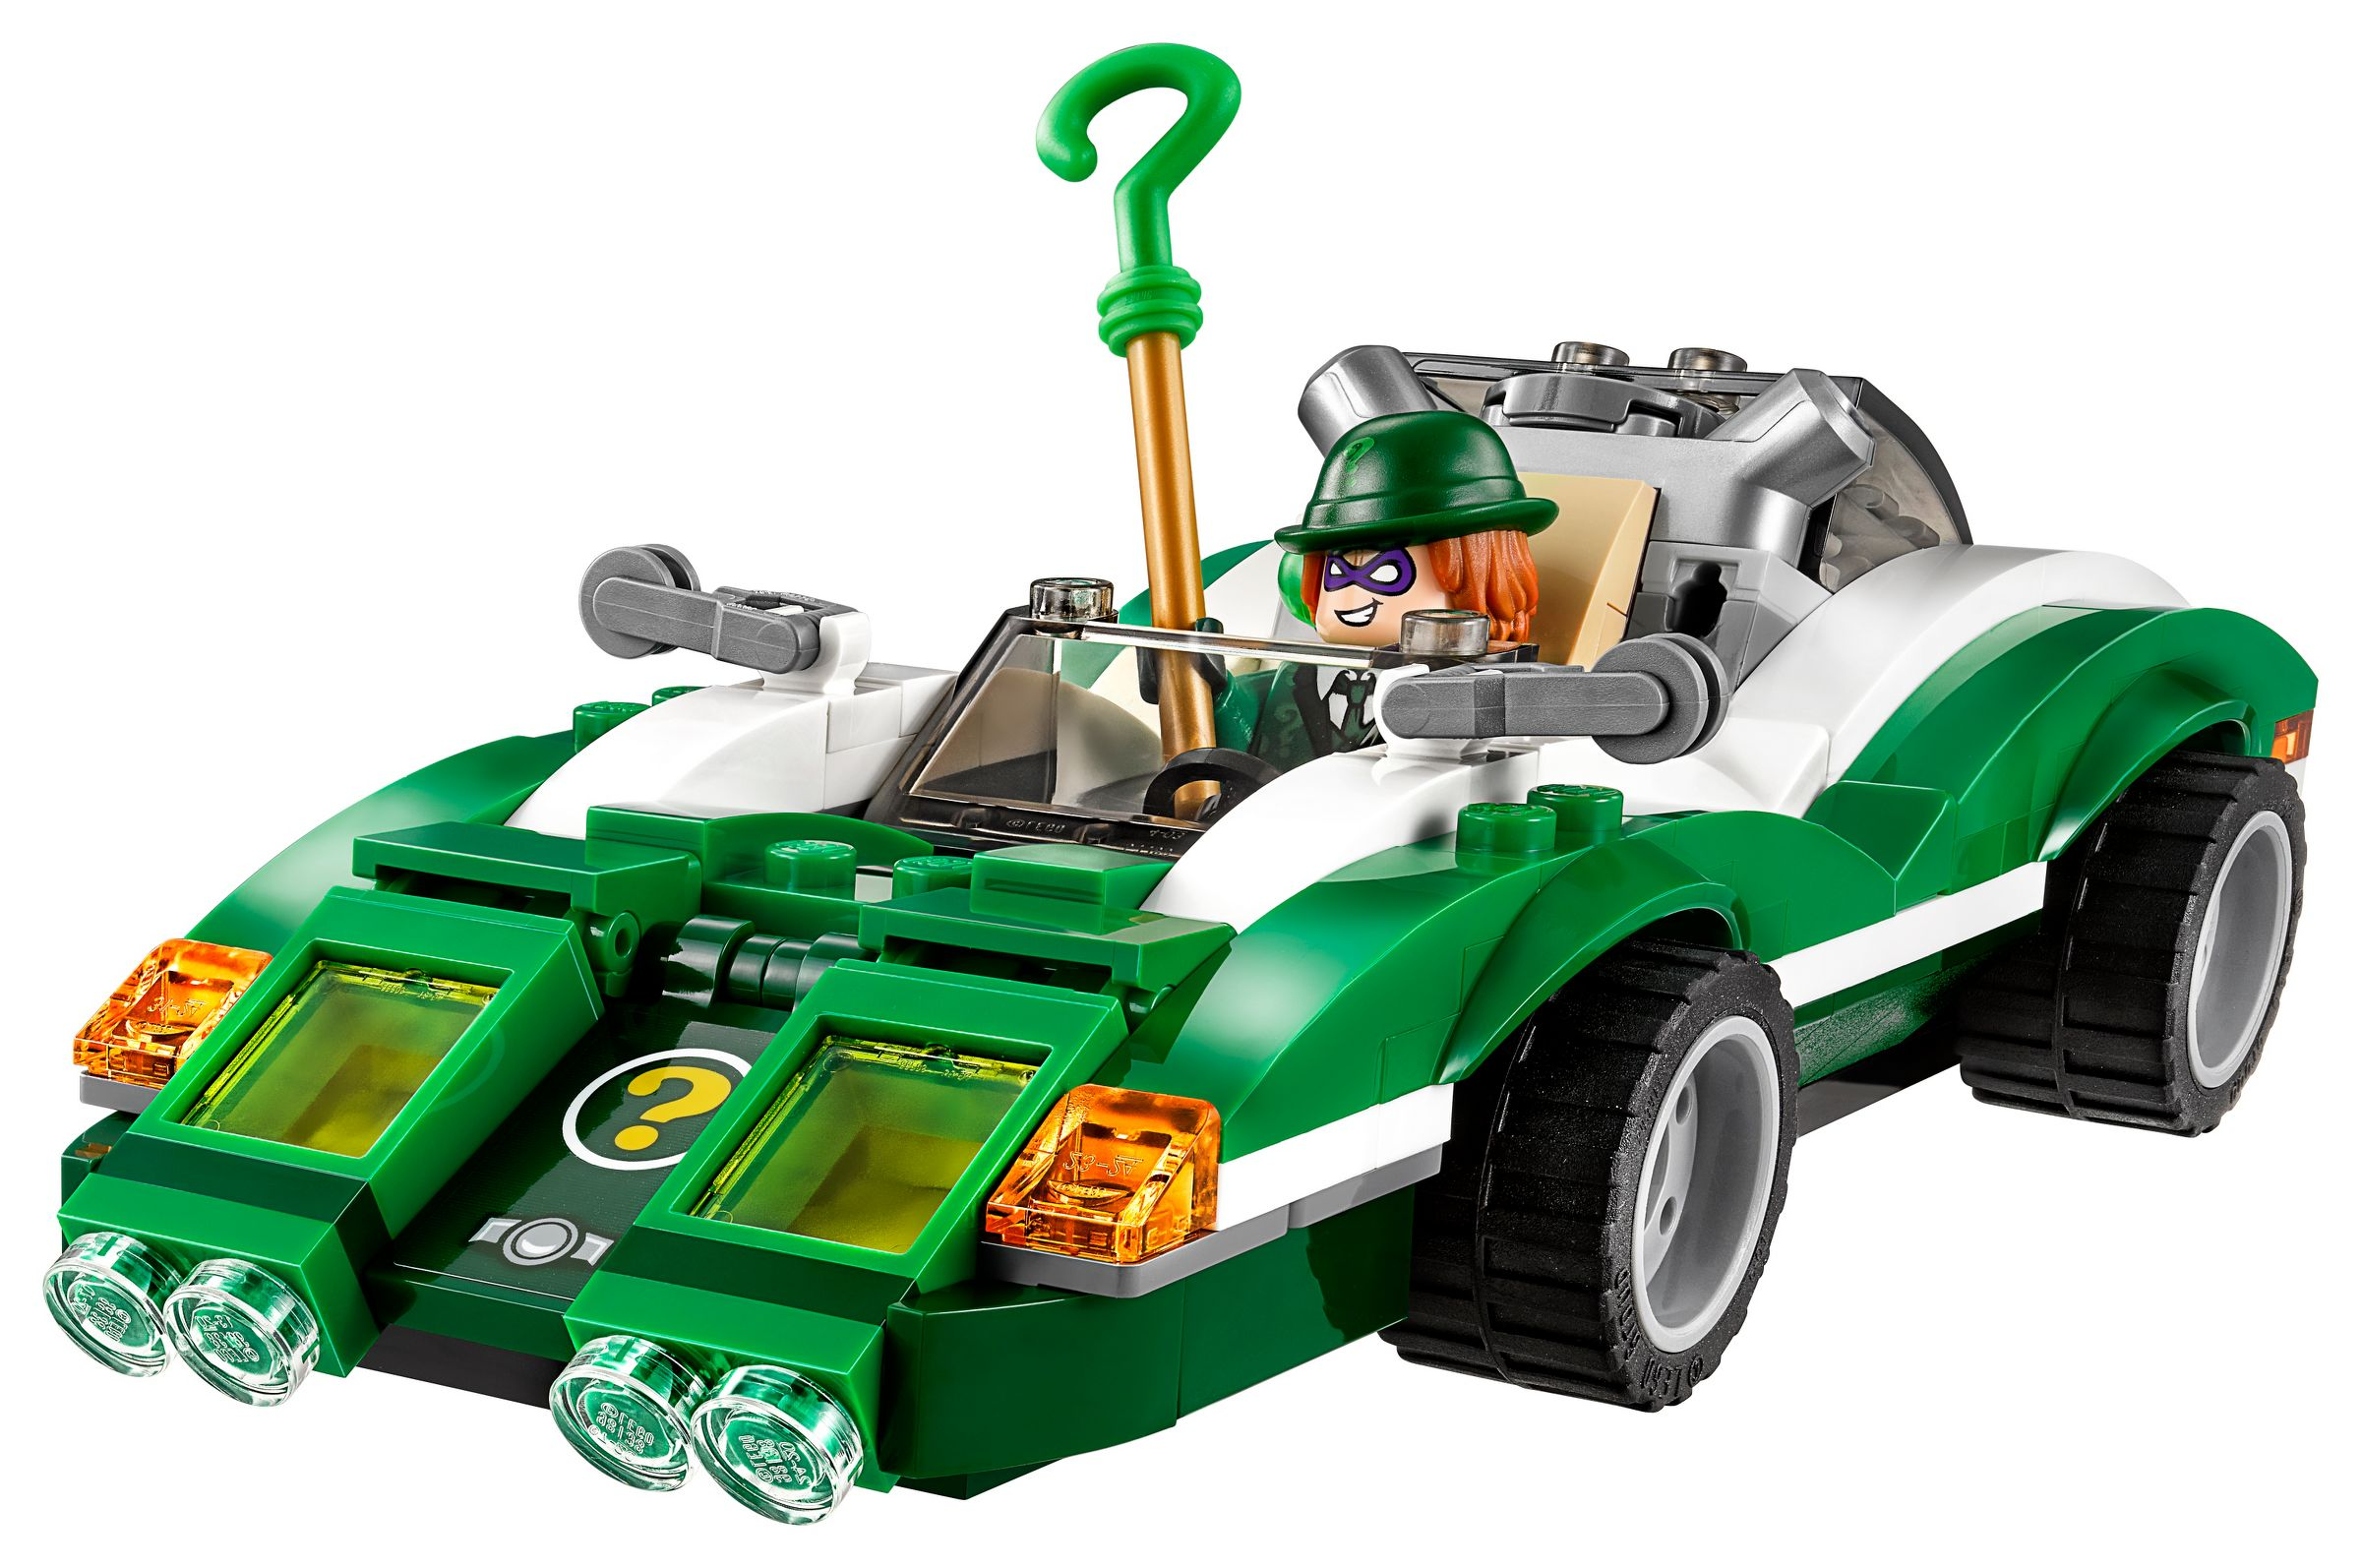 LEGO The LEGO Batman Movie 70903 The Riddler™: Riddle Racer LEGO_70903_alt2.jpg